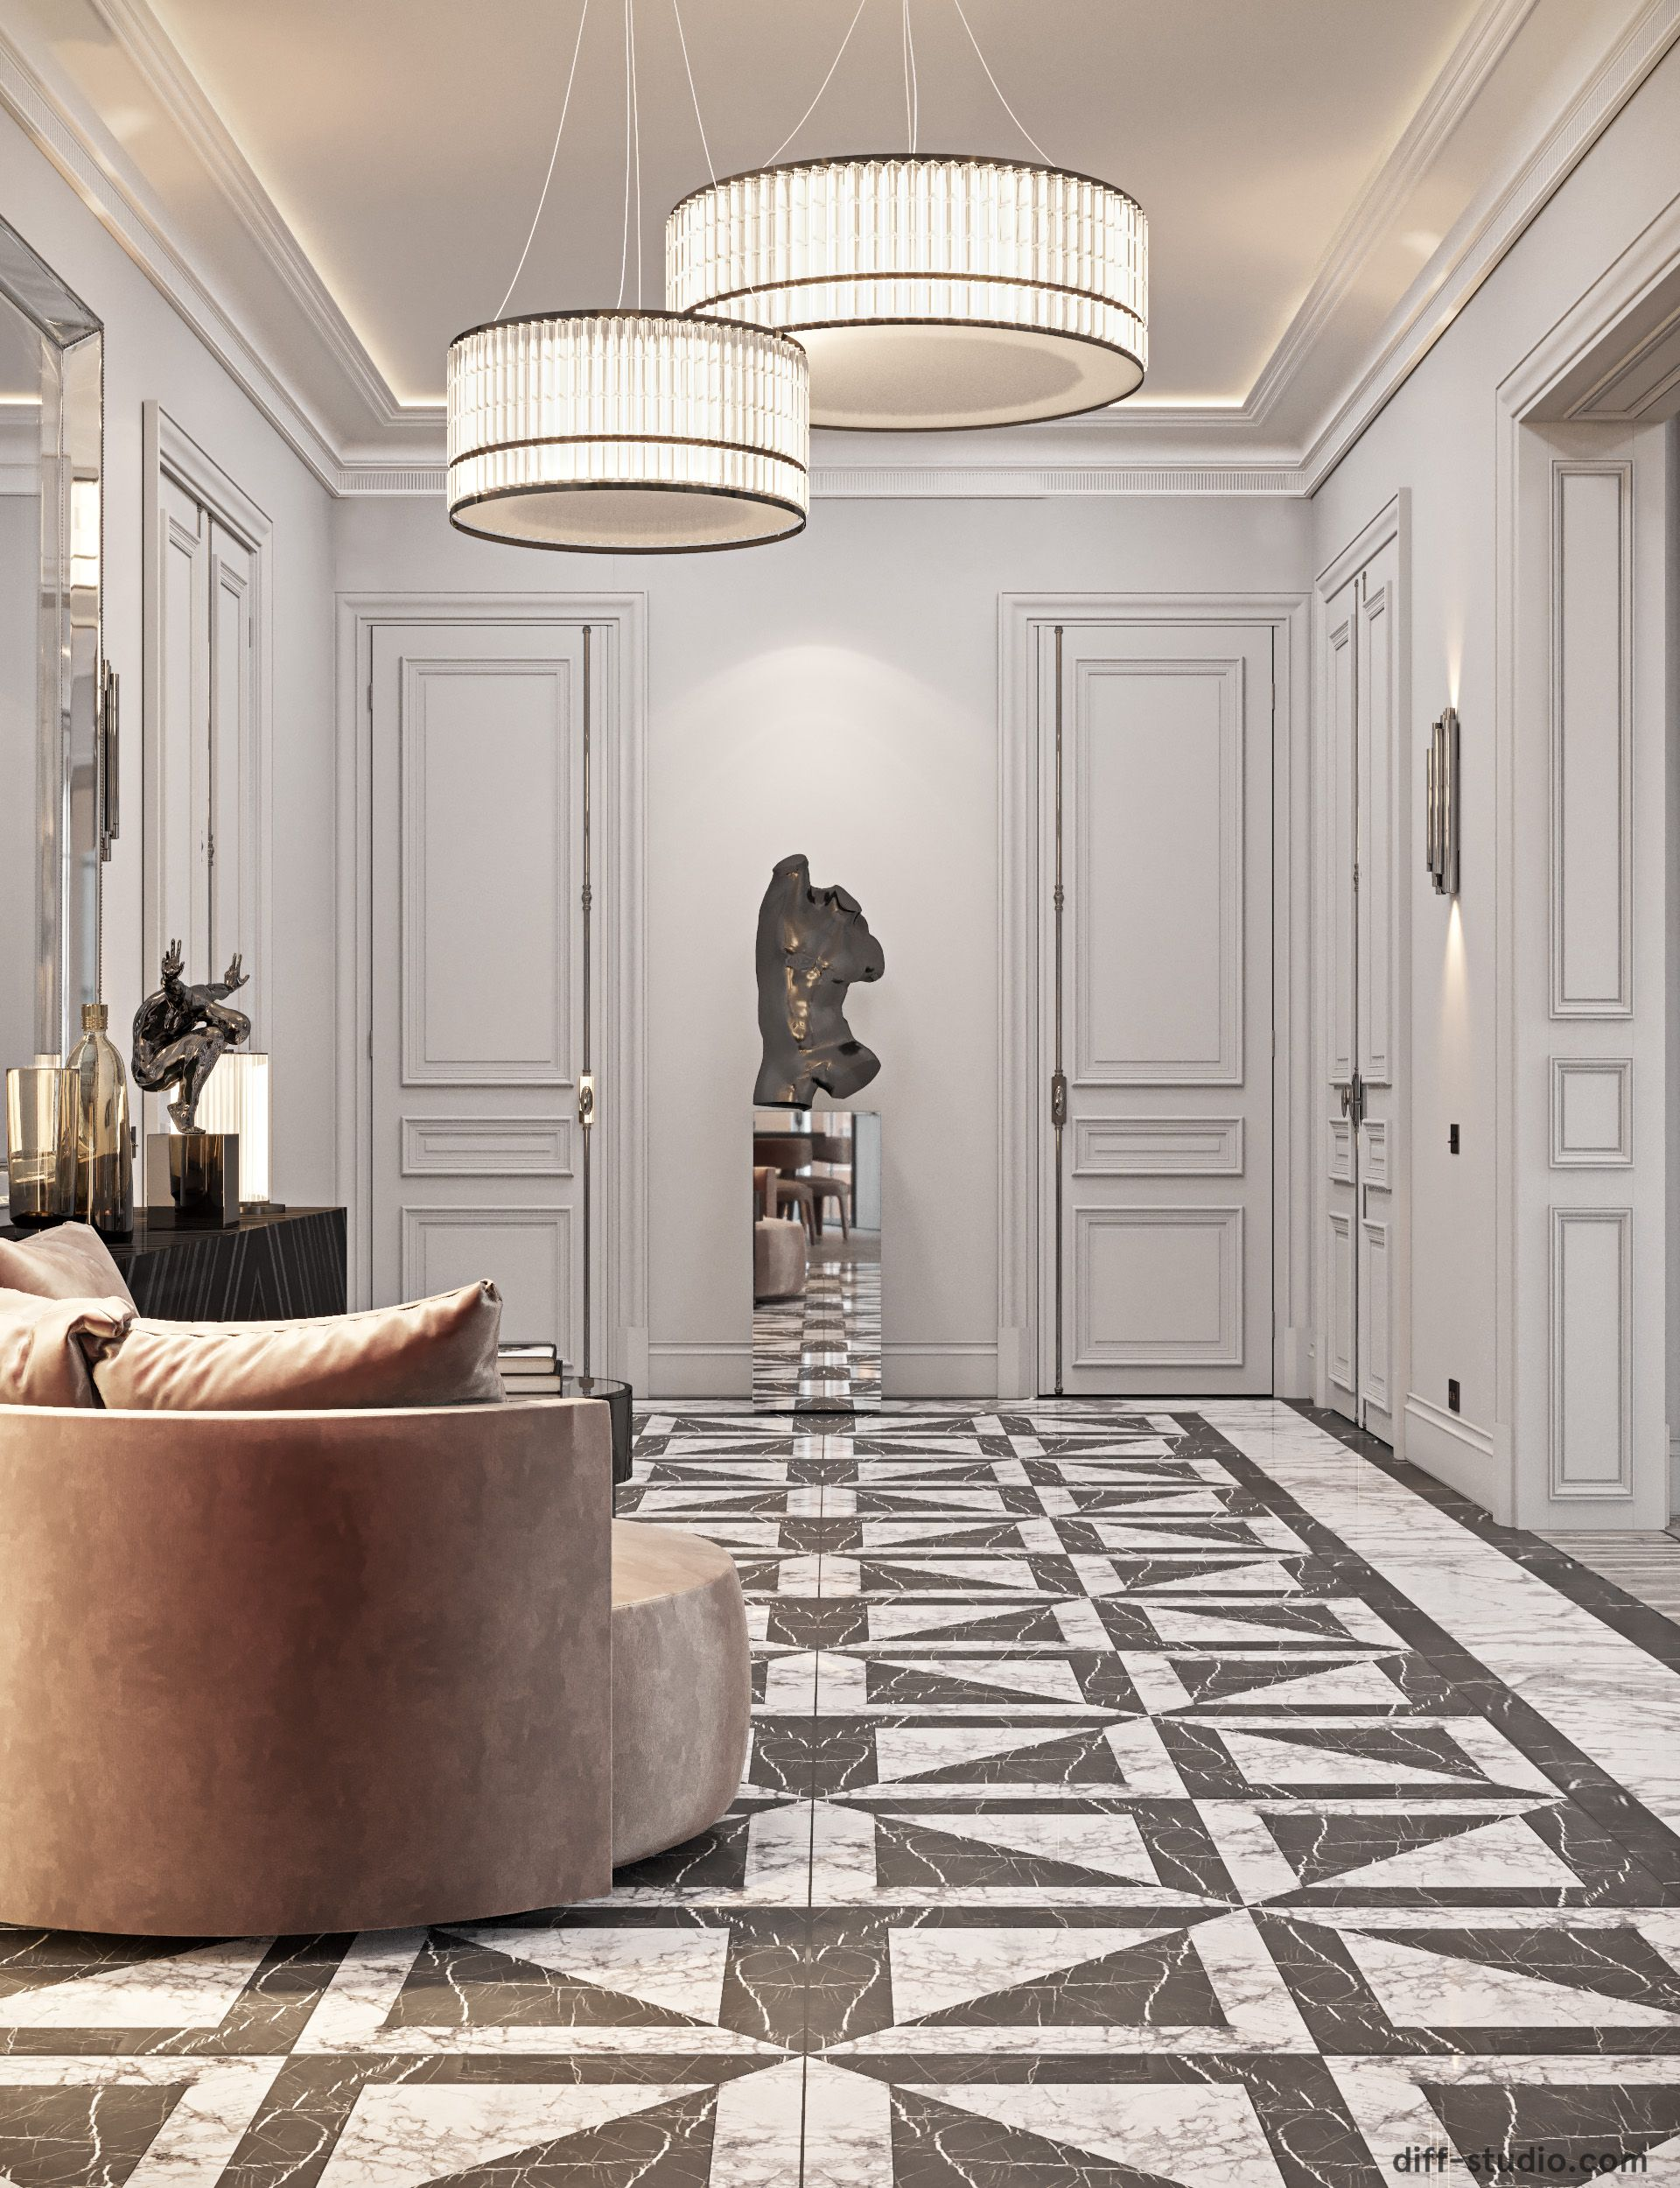 Diff Studio Fabulous Story In Paris Luxury Home Decor Classic Interior Design Interior Design Studio